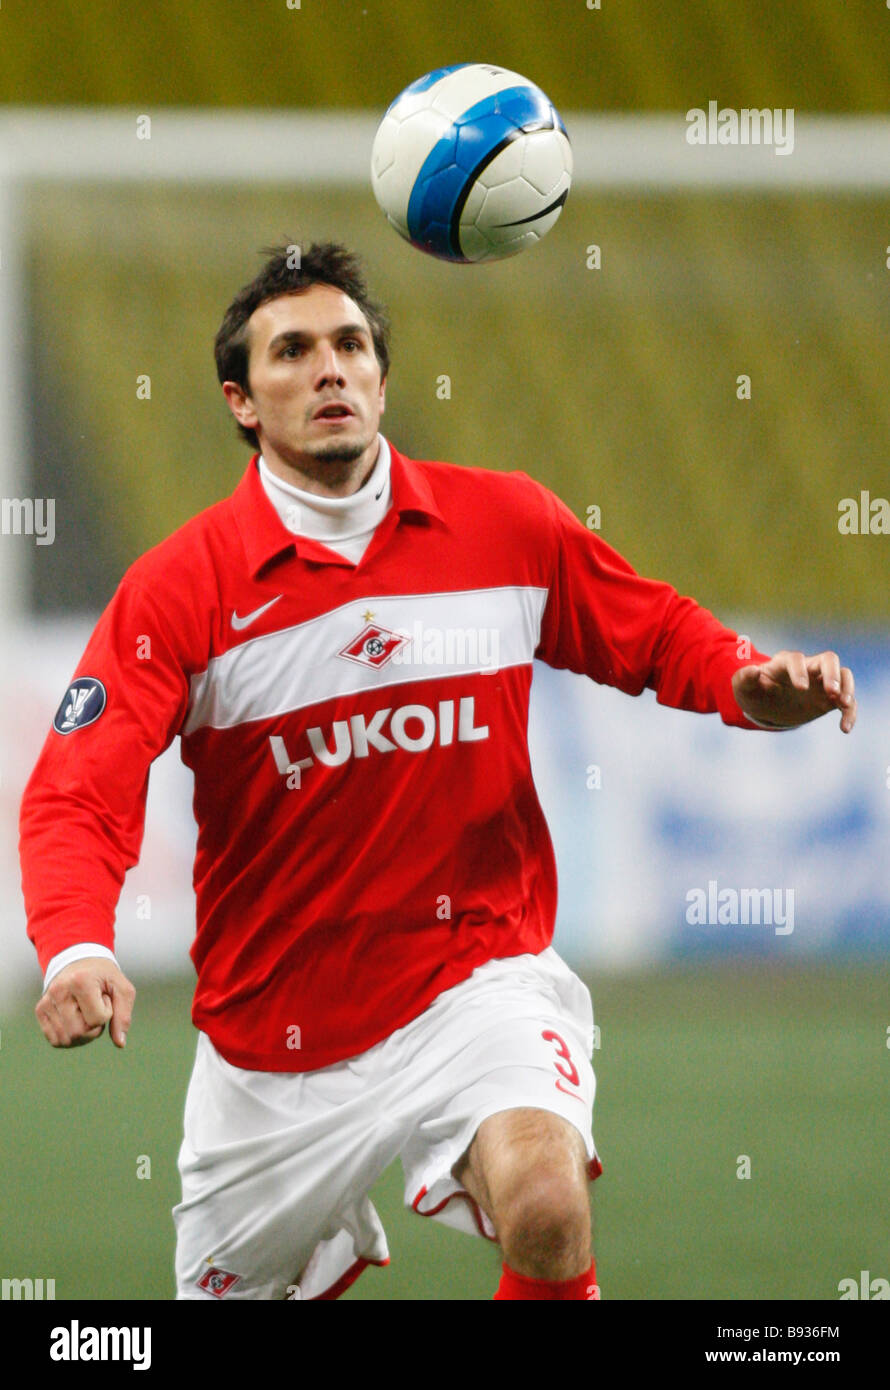 Martin Stranzl of Spartak Moscow plays against Bayer Leverkusen Germany Spartak Moscow won this UEFA Cup match Group - Stock Image